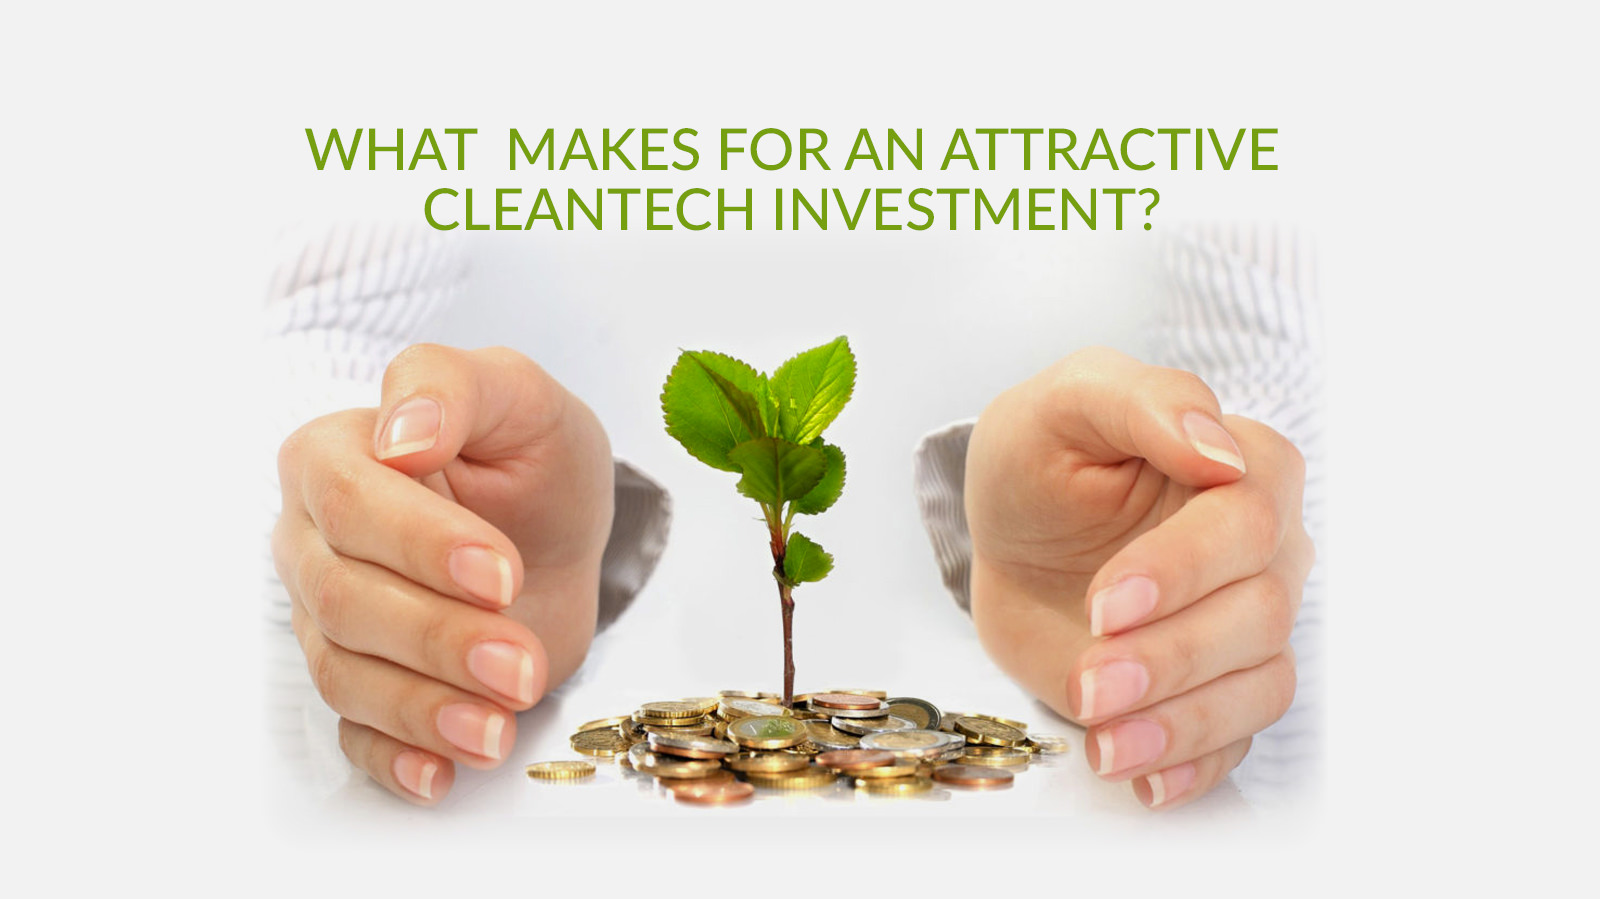 What makes for an attractive cleantech investment currently?